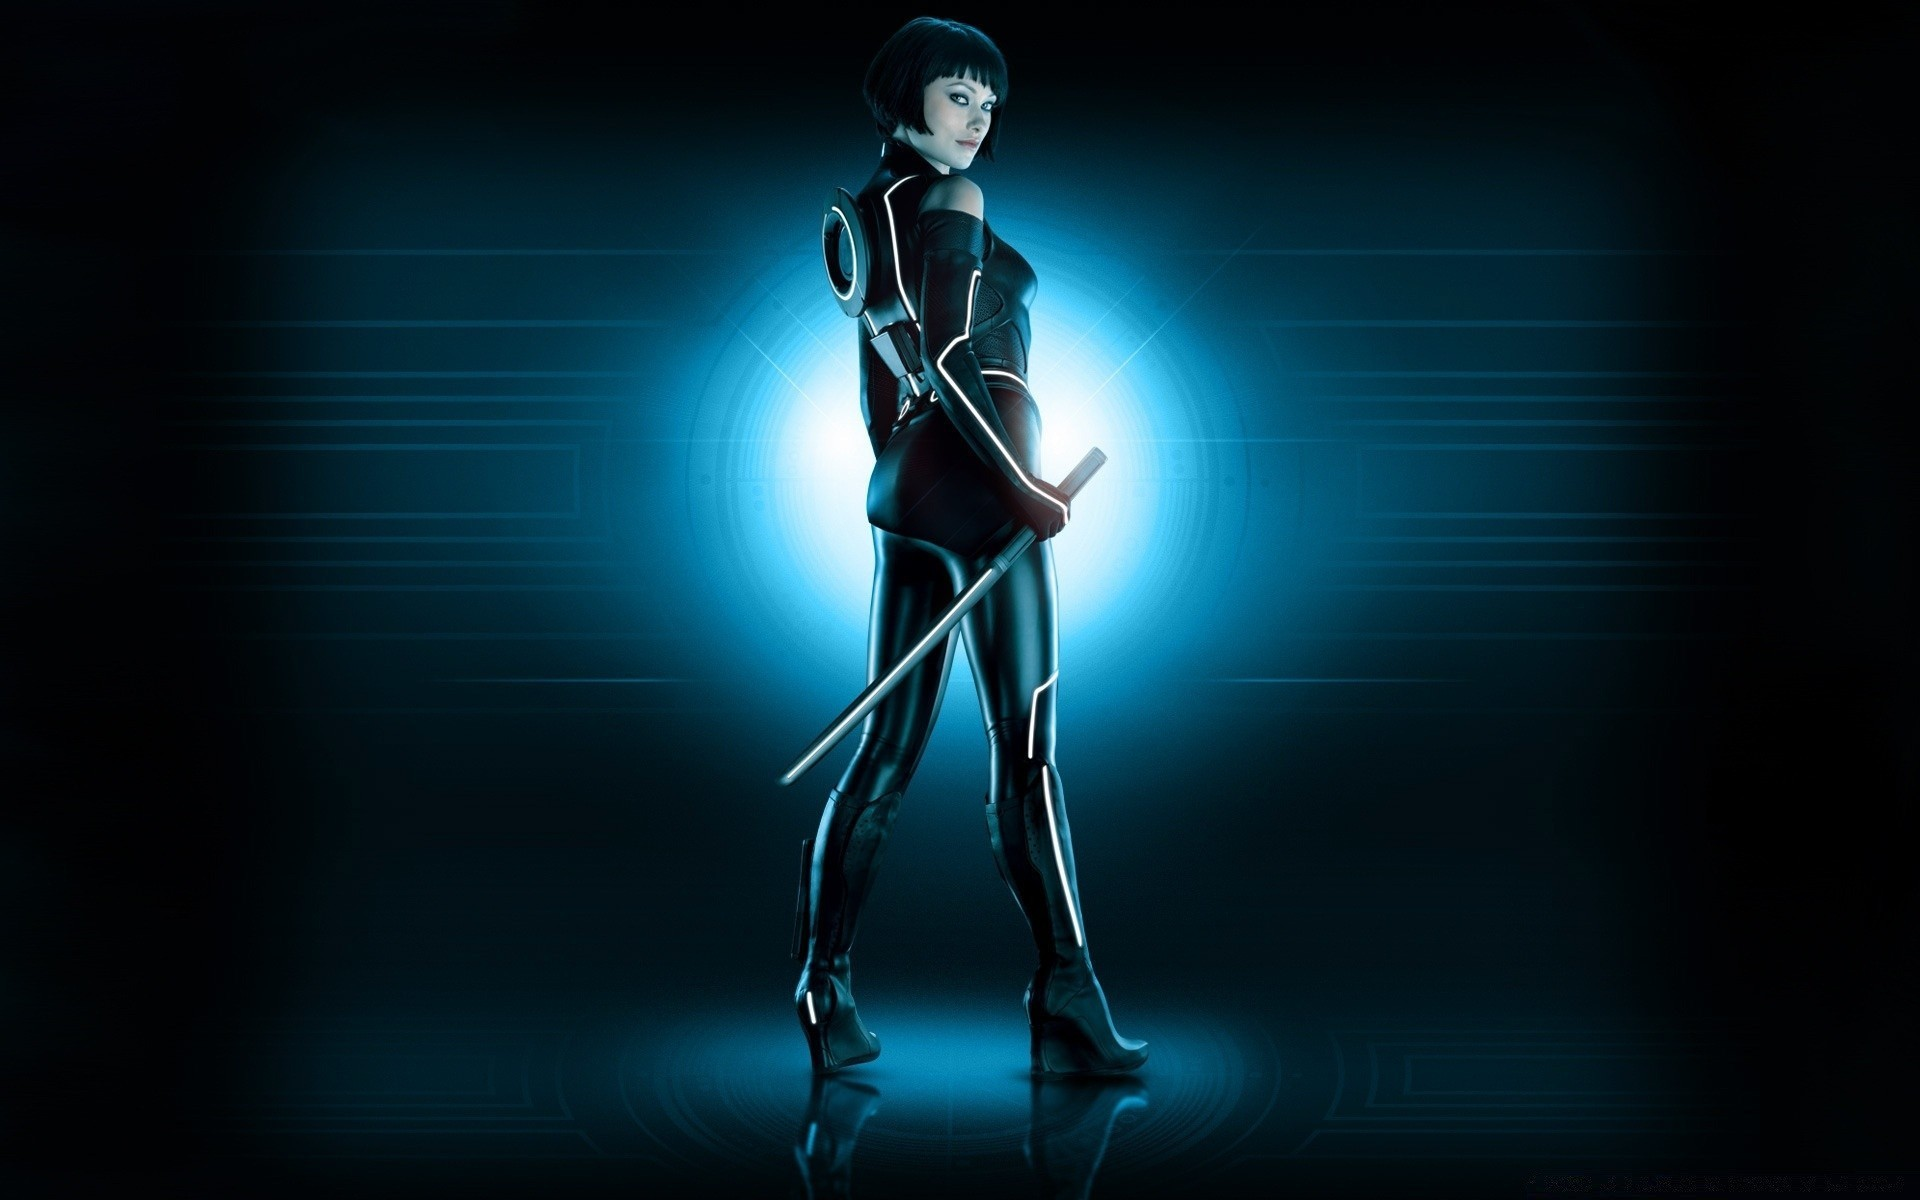 1920x1200 Tron legacy anatomy science body biology woman medicine man silhouette HD  wallpaper. Android wallpapers for free.